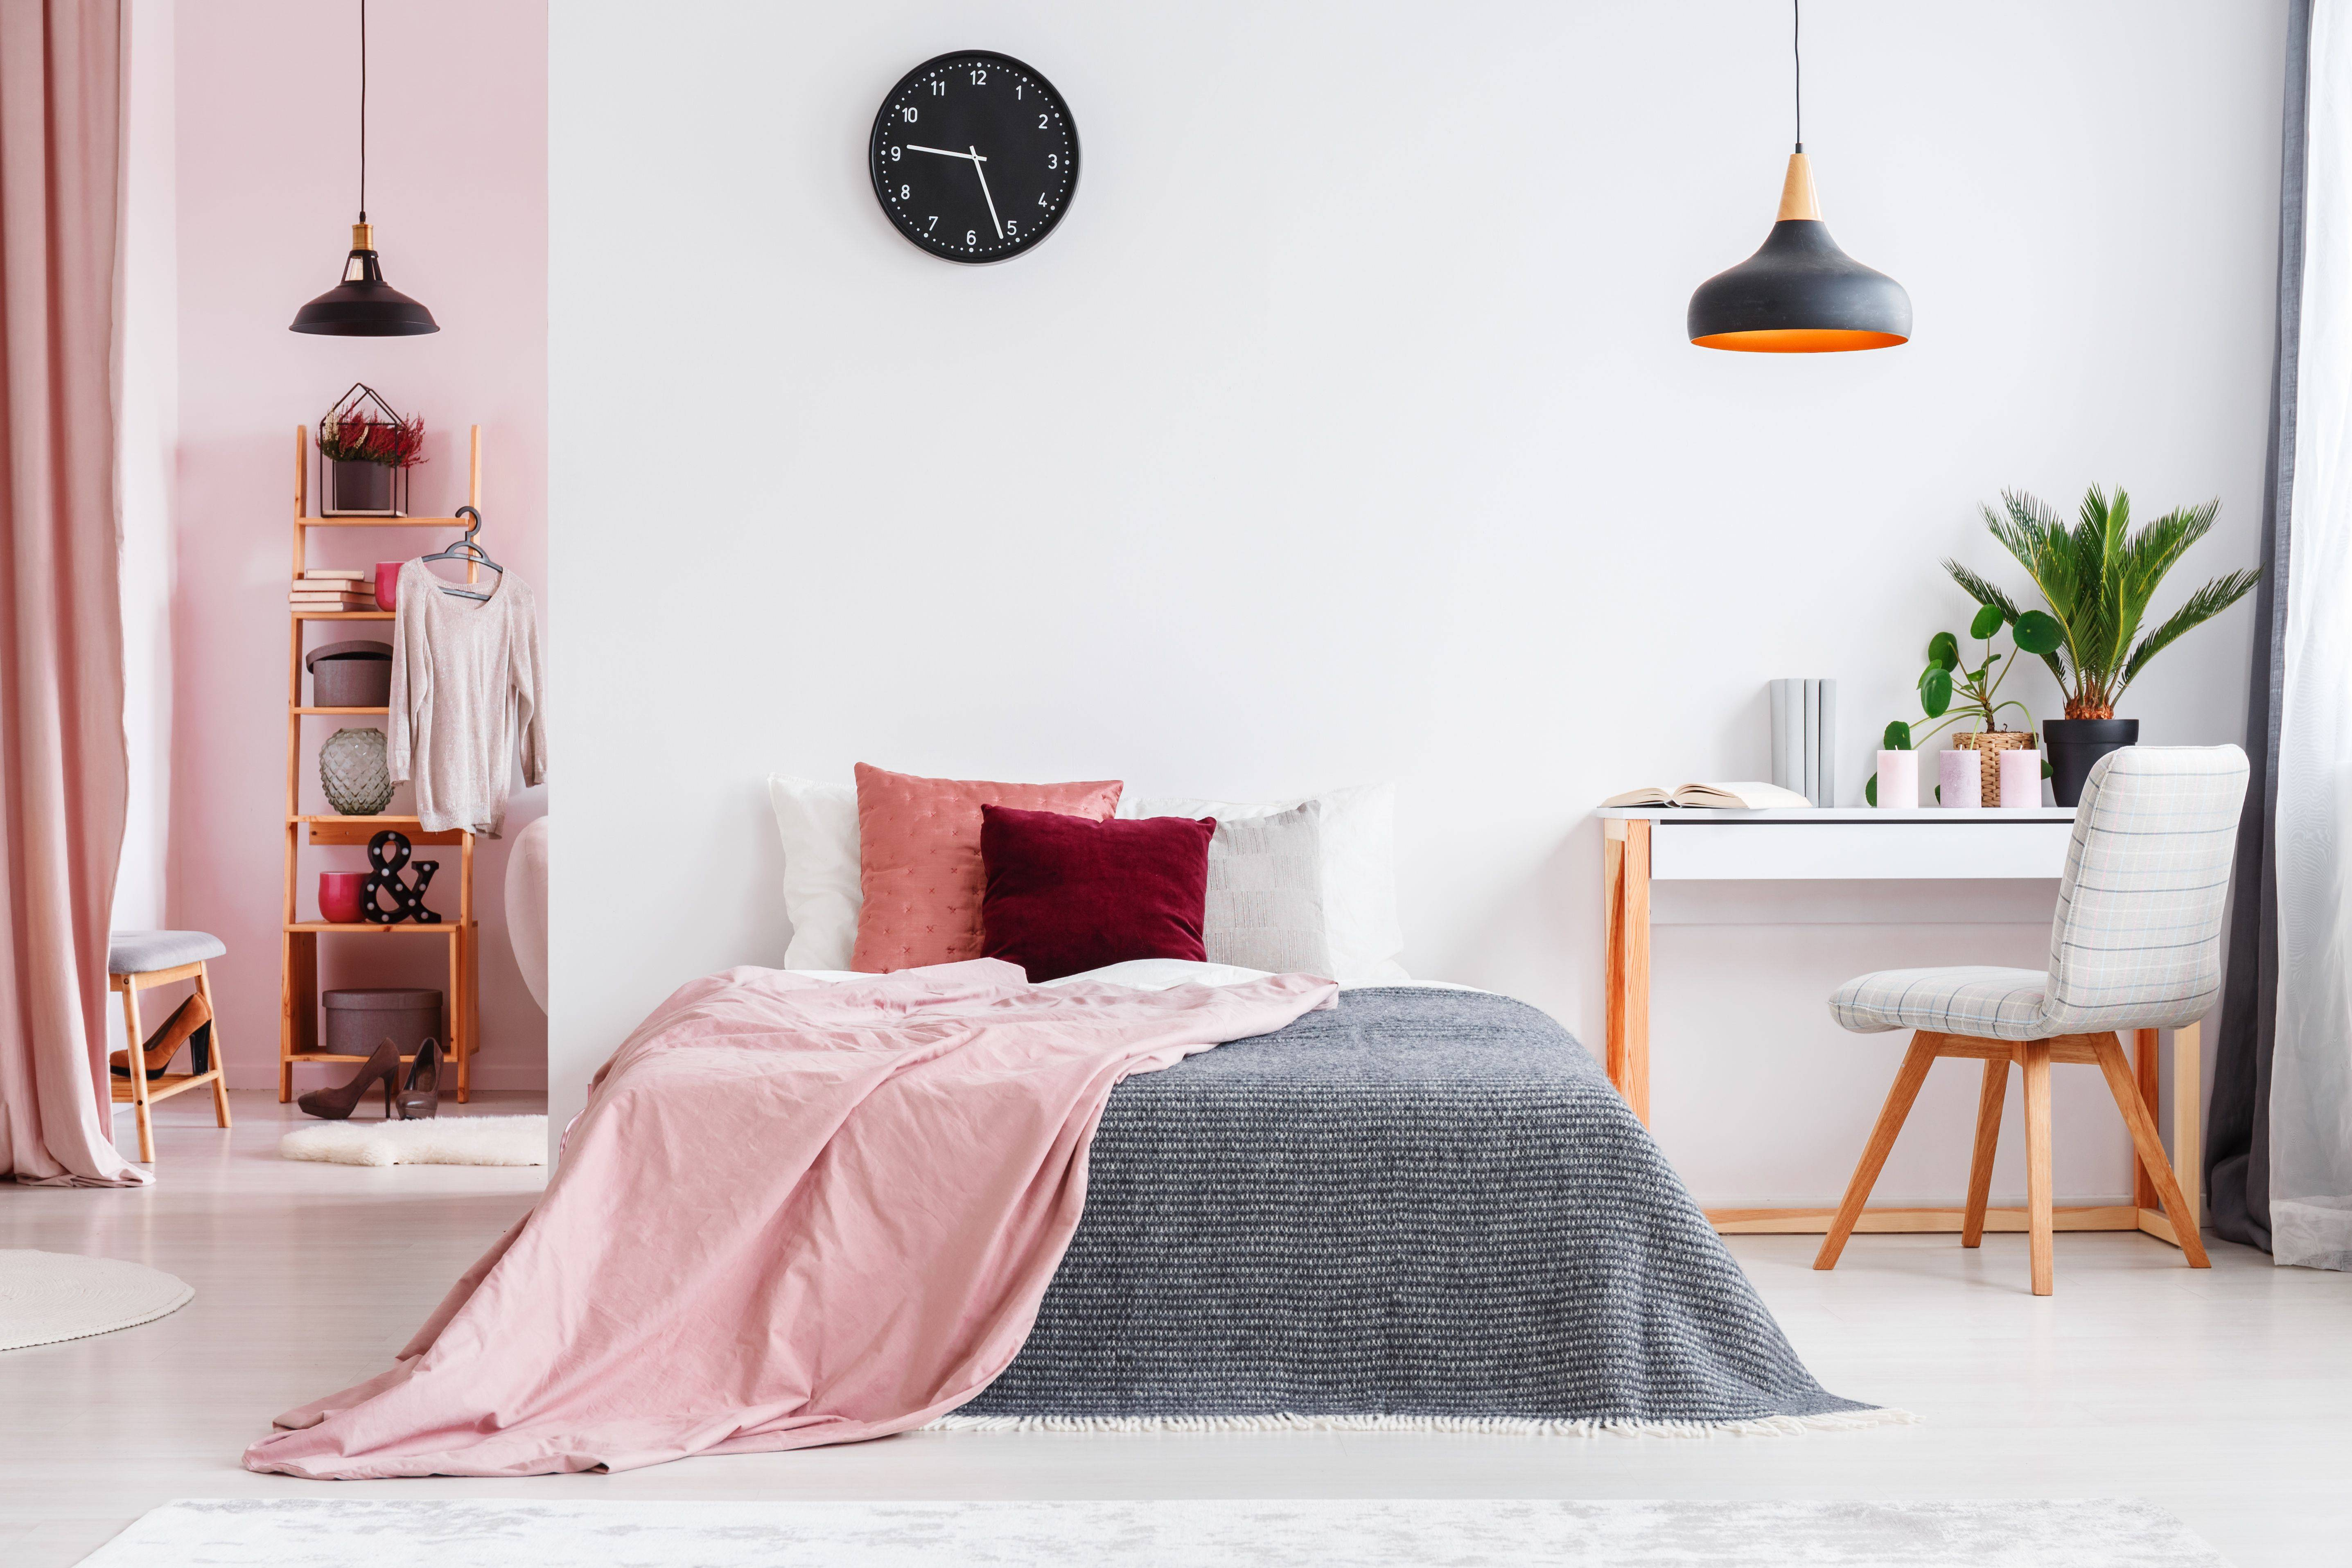 pink bedroom interior with chair 5abcfb5dfa6bcc b13